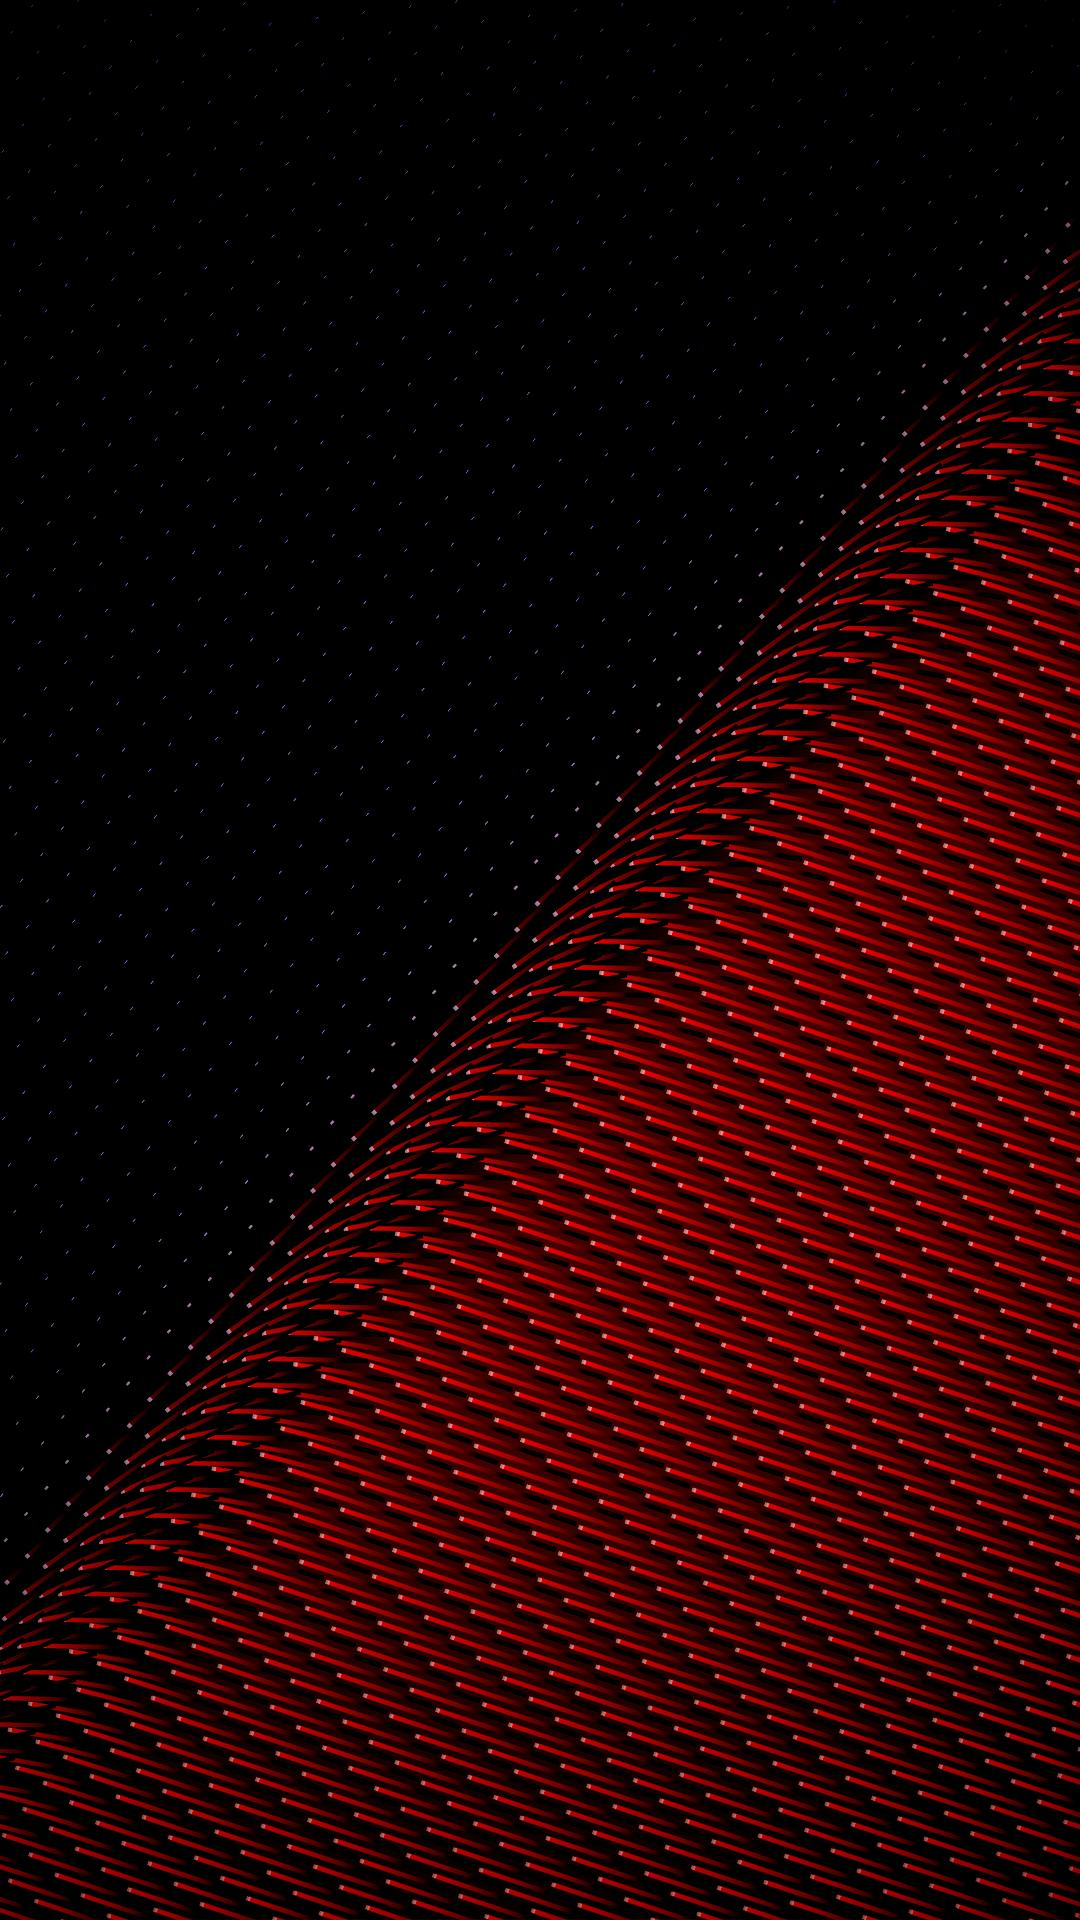 Black Background Abstract Amoled Portrait Display Black Background Hd Portrait 728x1294 Download Hd Wallpaper Wallpapertip